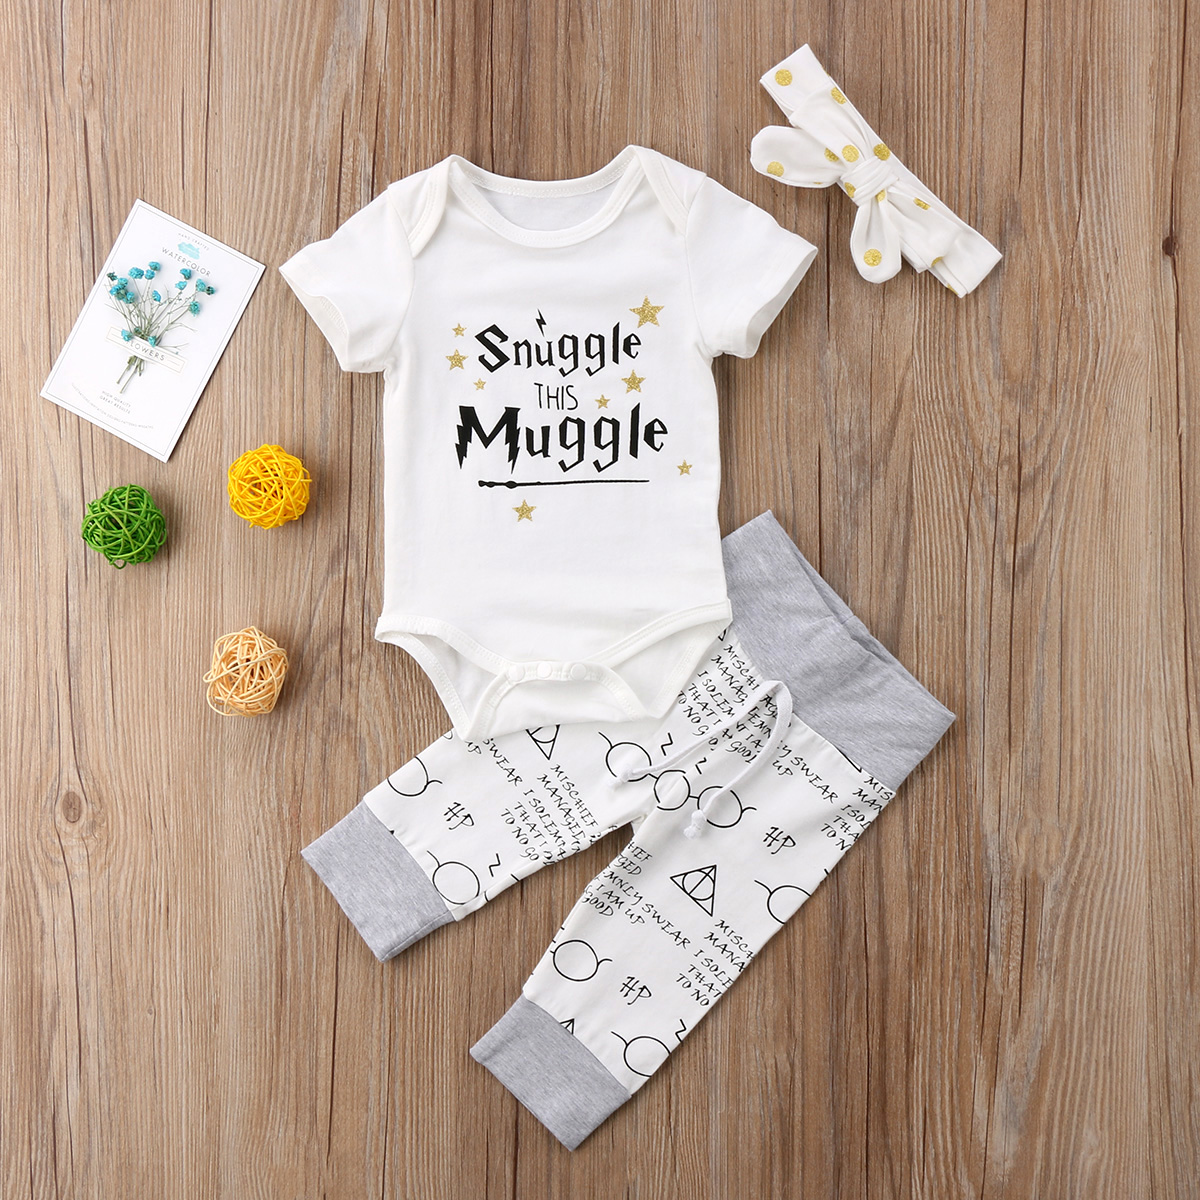 2d696f6a503 Newborn Baby Kids Boys Girls Cotton Romper Tops + Long Pants 2pcs Baby  Clothing Outfits Set-in Clothing Sets from Mother   Kids on Aliexpress.com